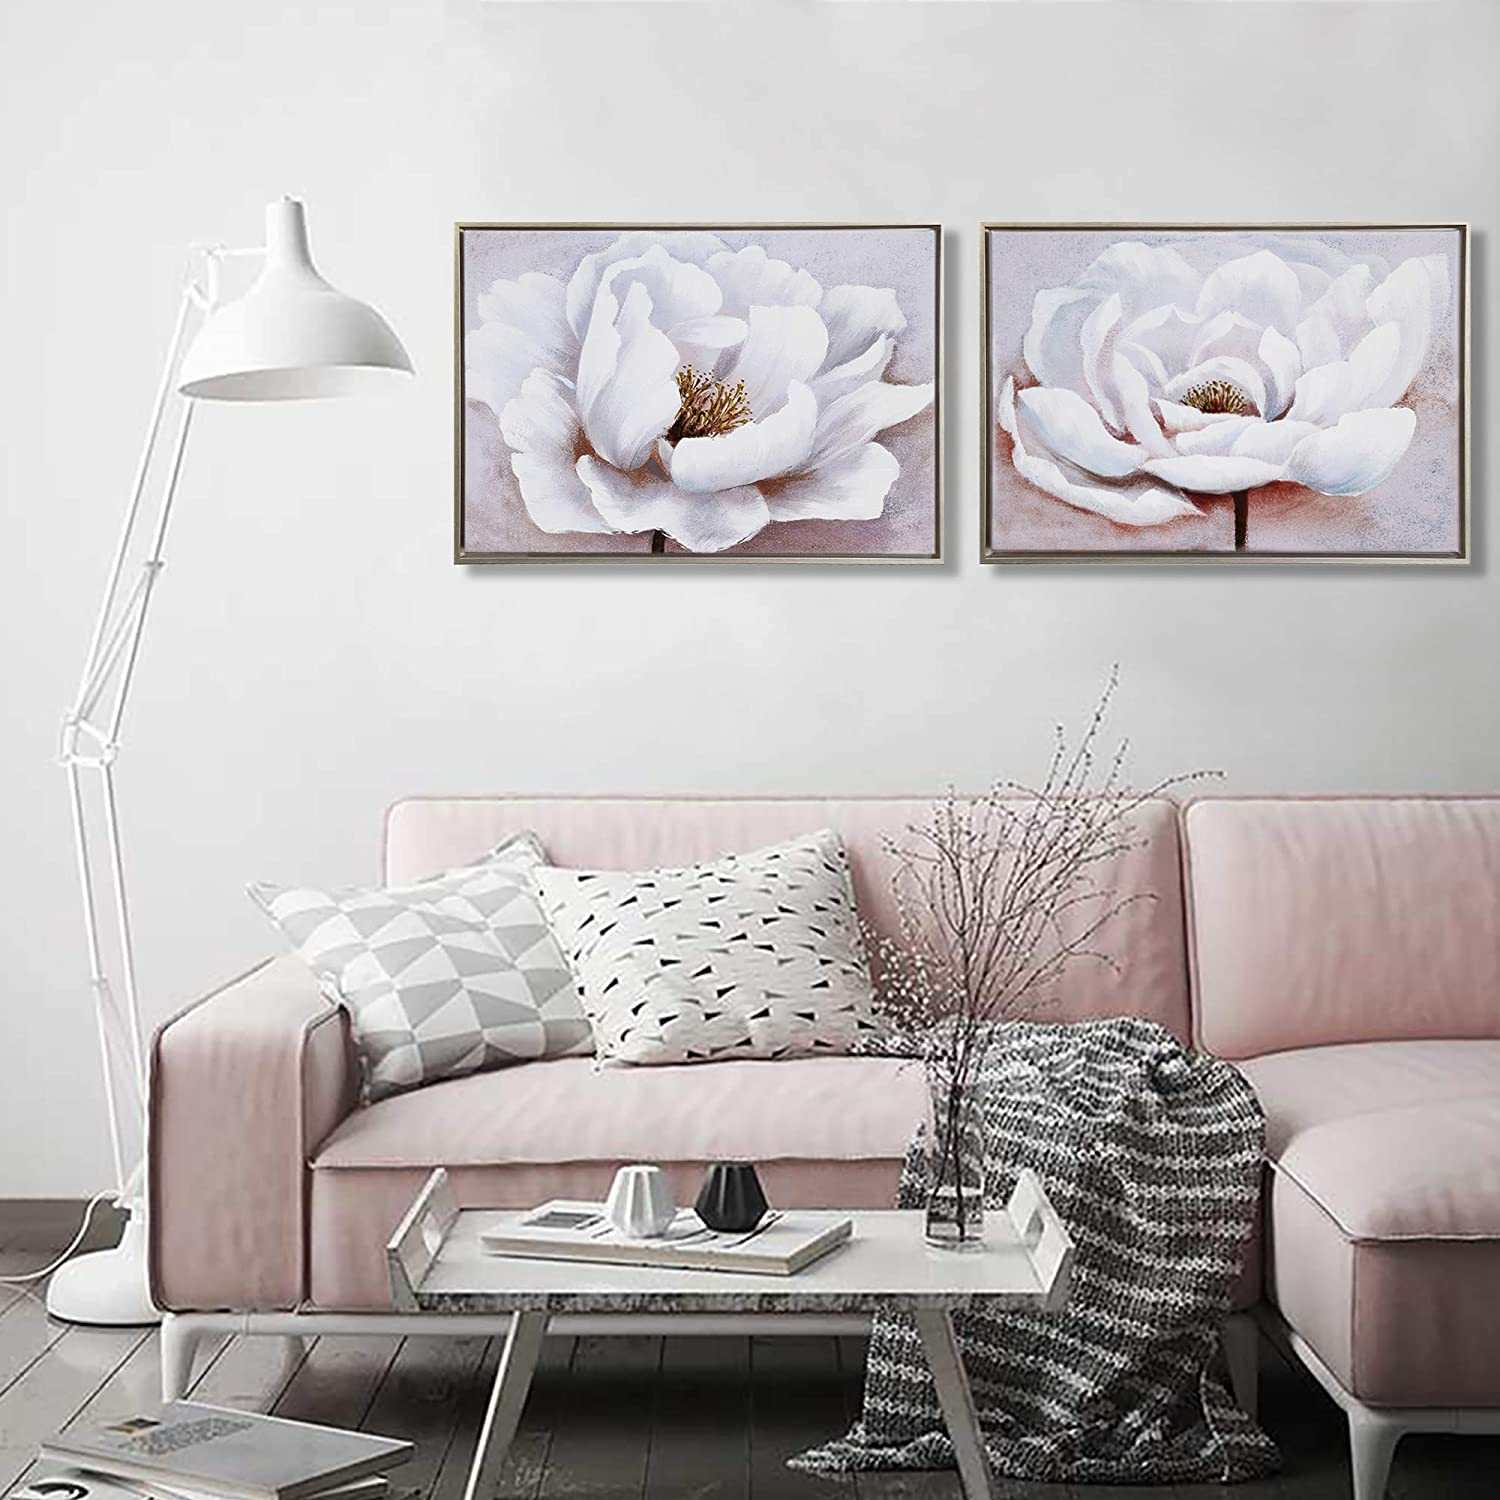 Bedroom wall decor morden framed flower painting bathroom wall art ready to hang white and pink floral 2 pcs blooming white flower home decoration for